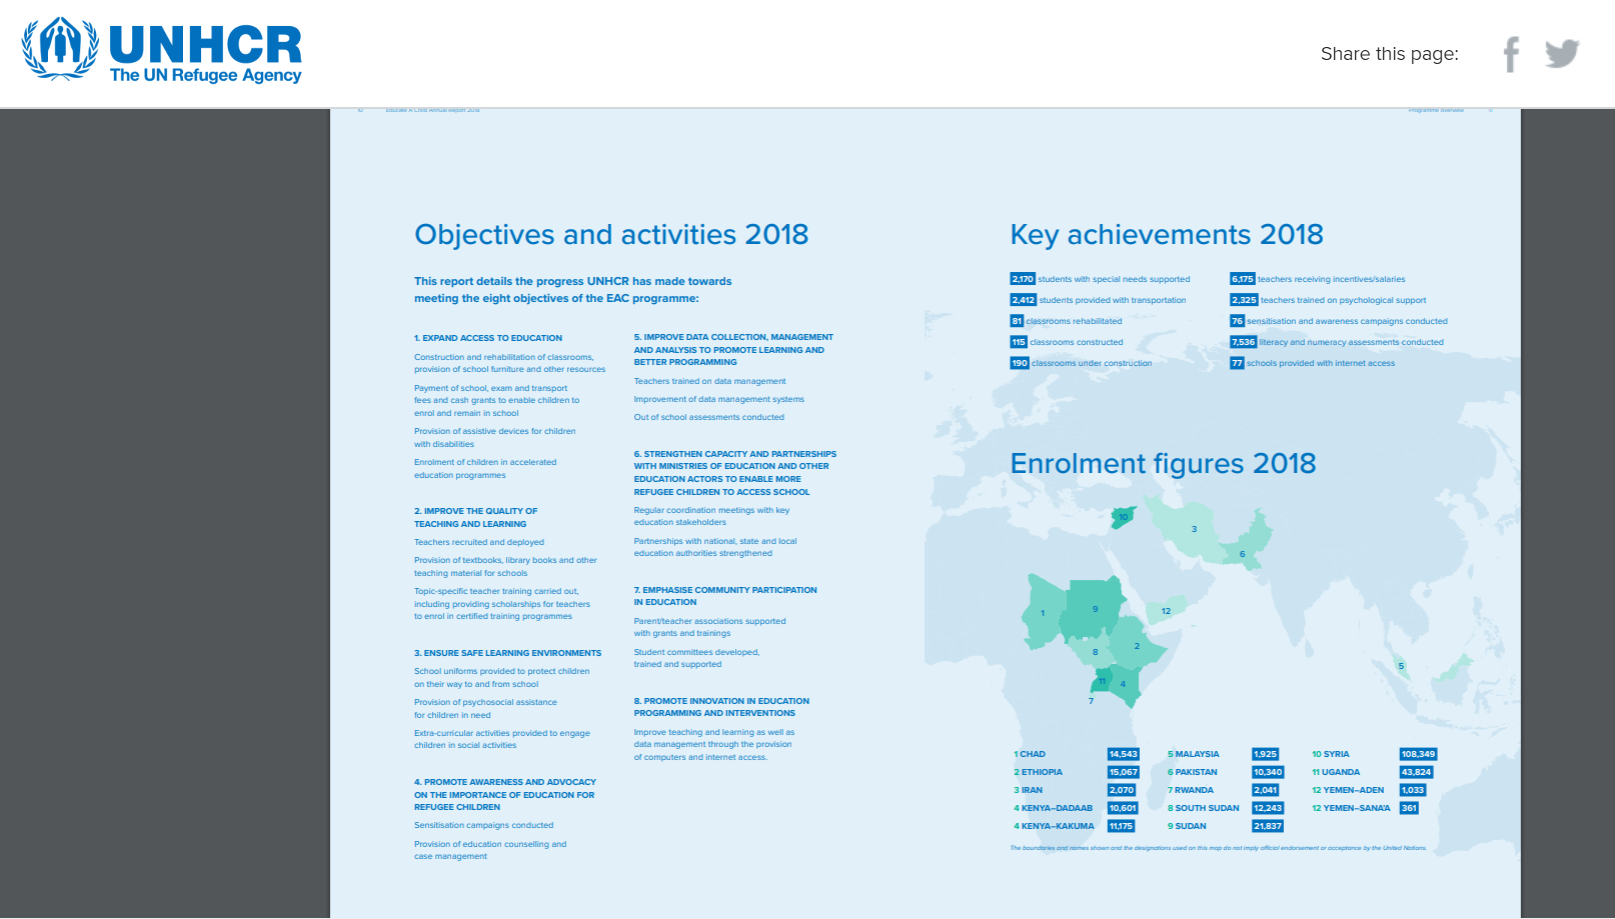 A page from the UNHCR annual report, offering objectives and achievements in blue text on light blue background.